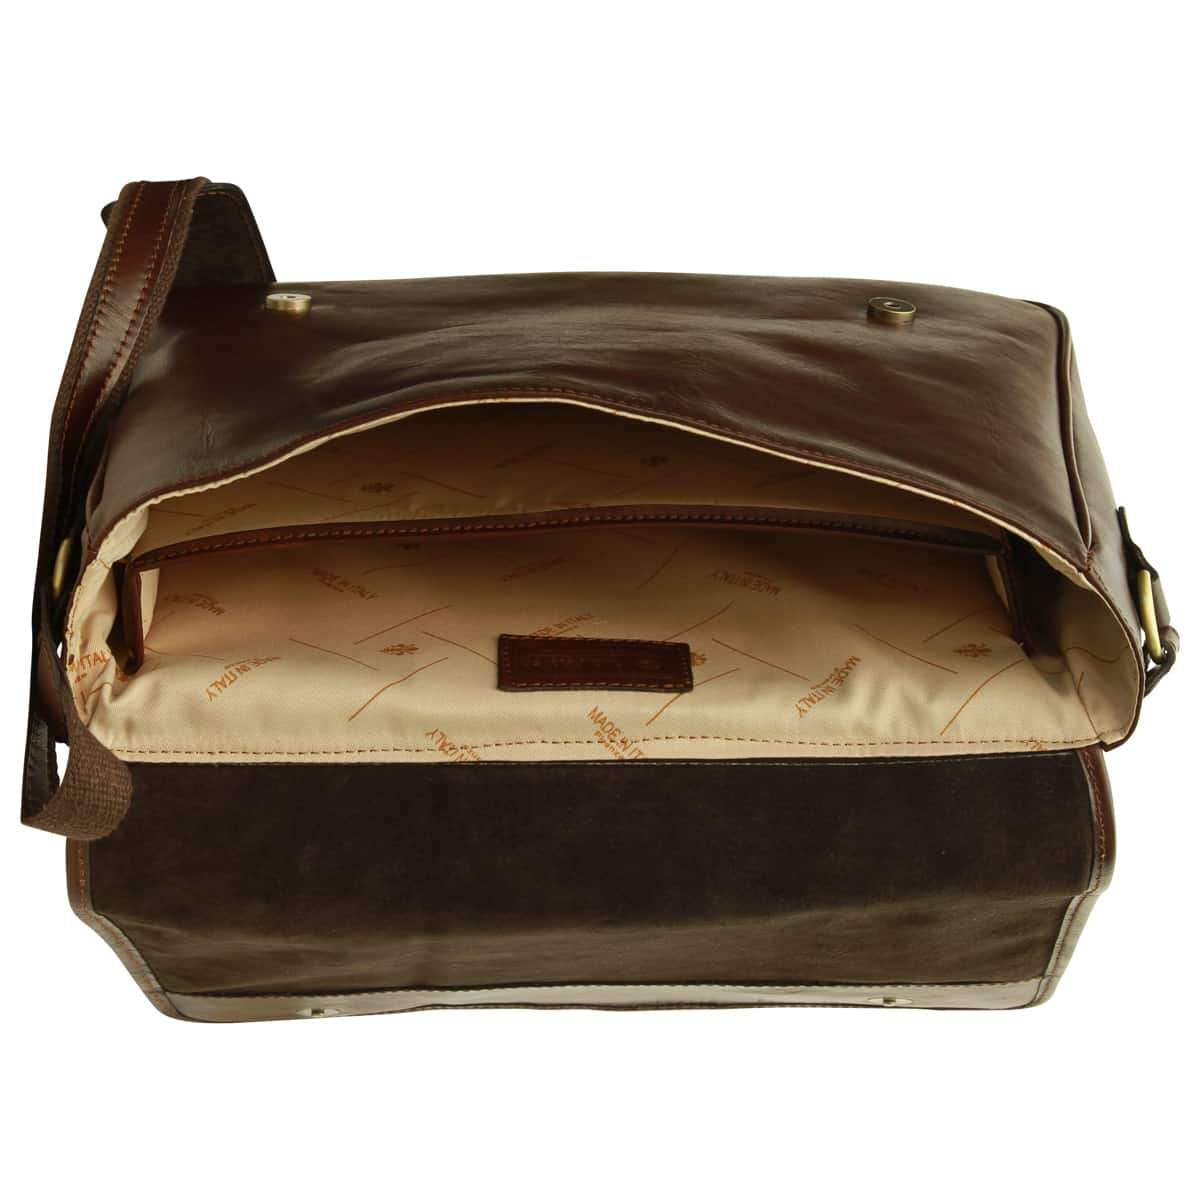 Borsa Messenger in vacchetta. Marrone scuro | 405089TM | Old Angler Firenze